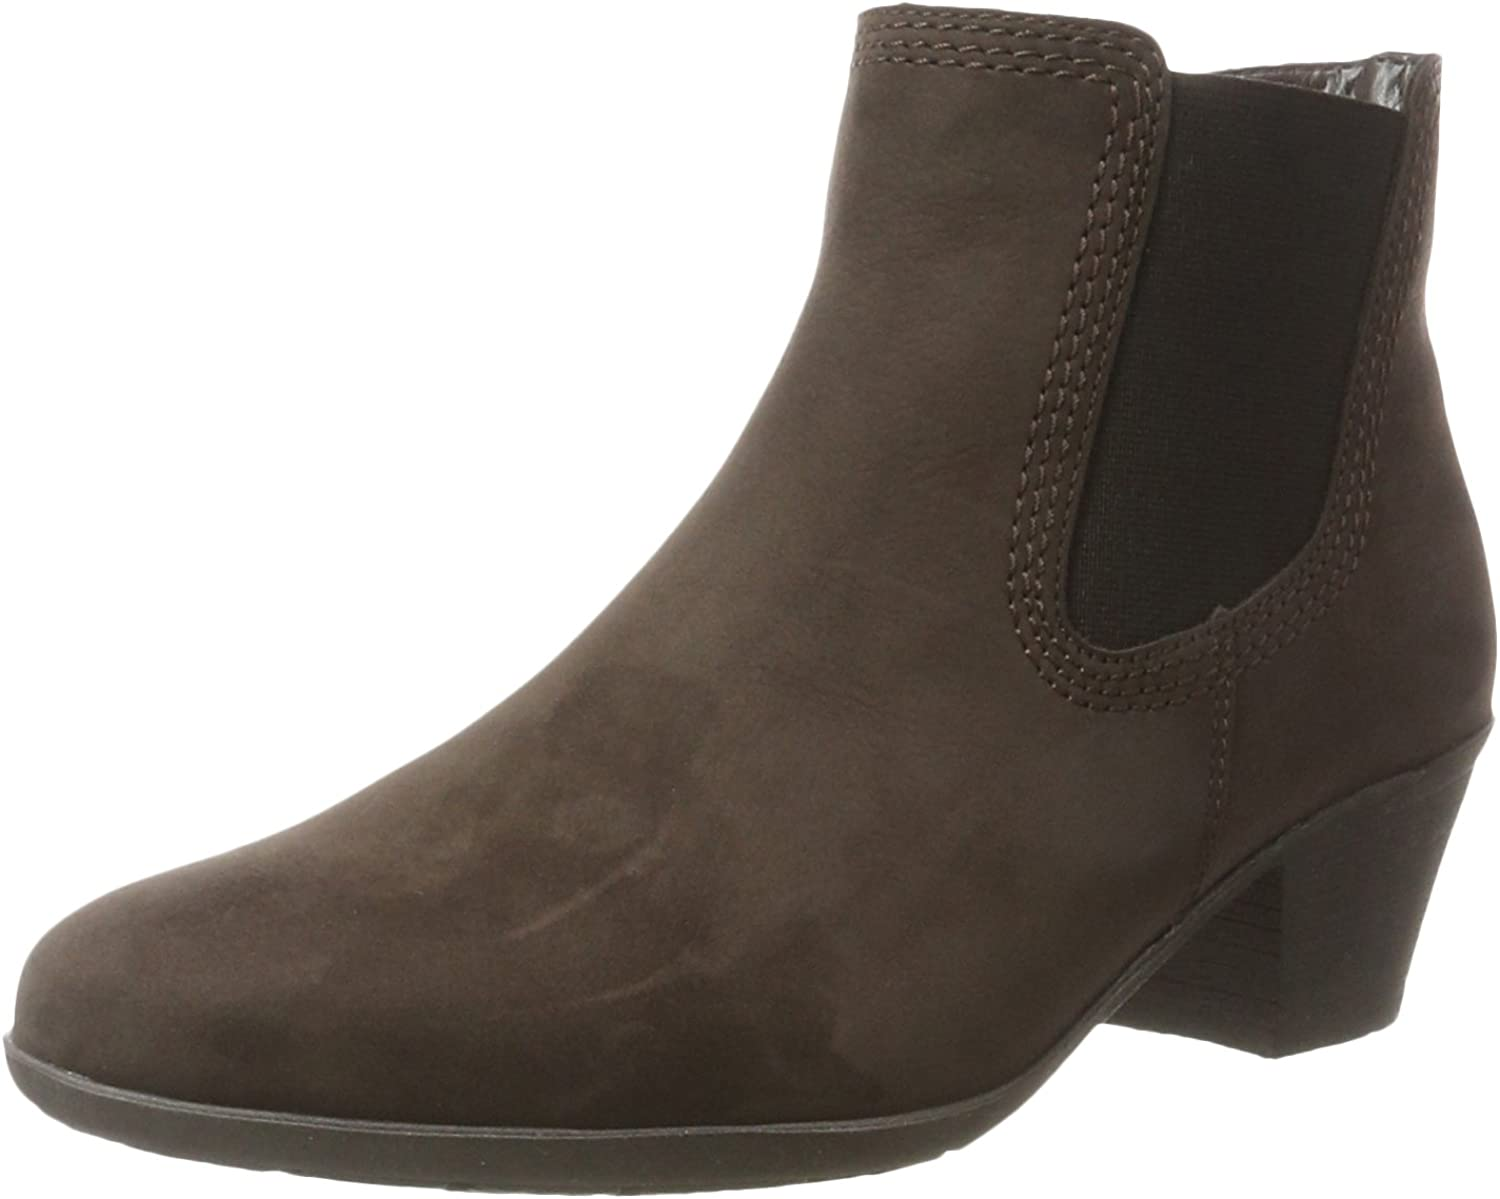 Gabor Women's Hoy Casual Chelsea Boots